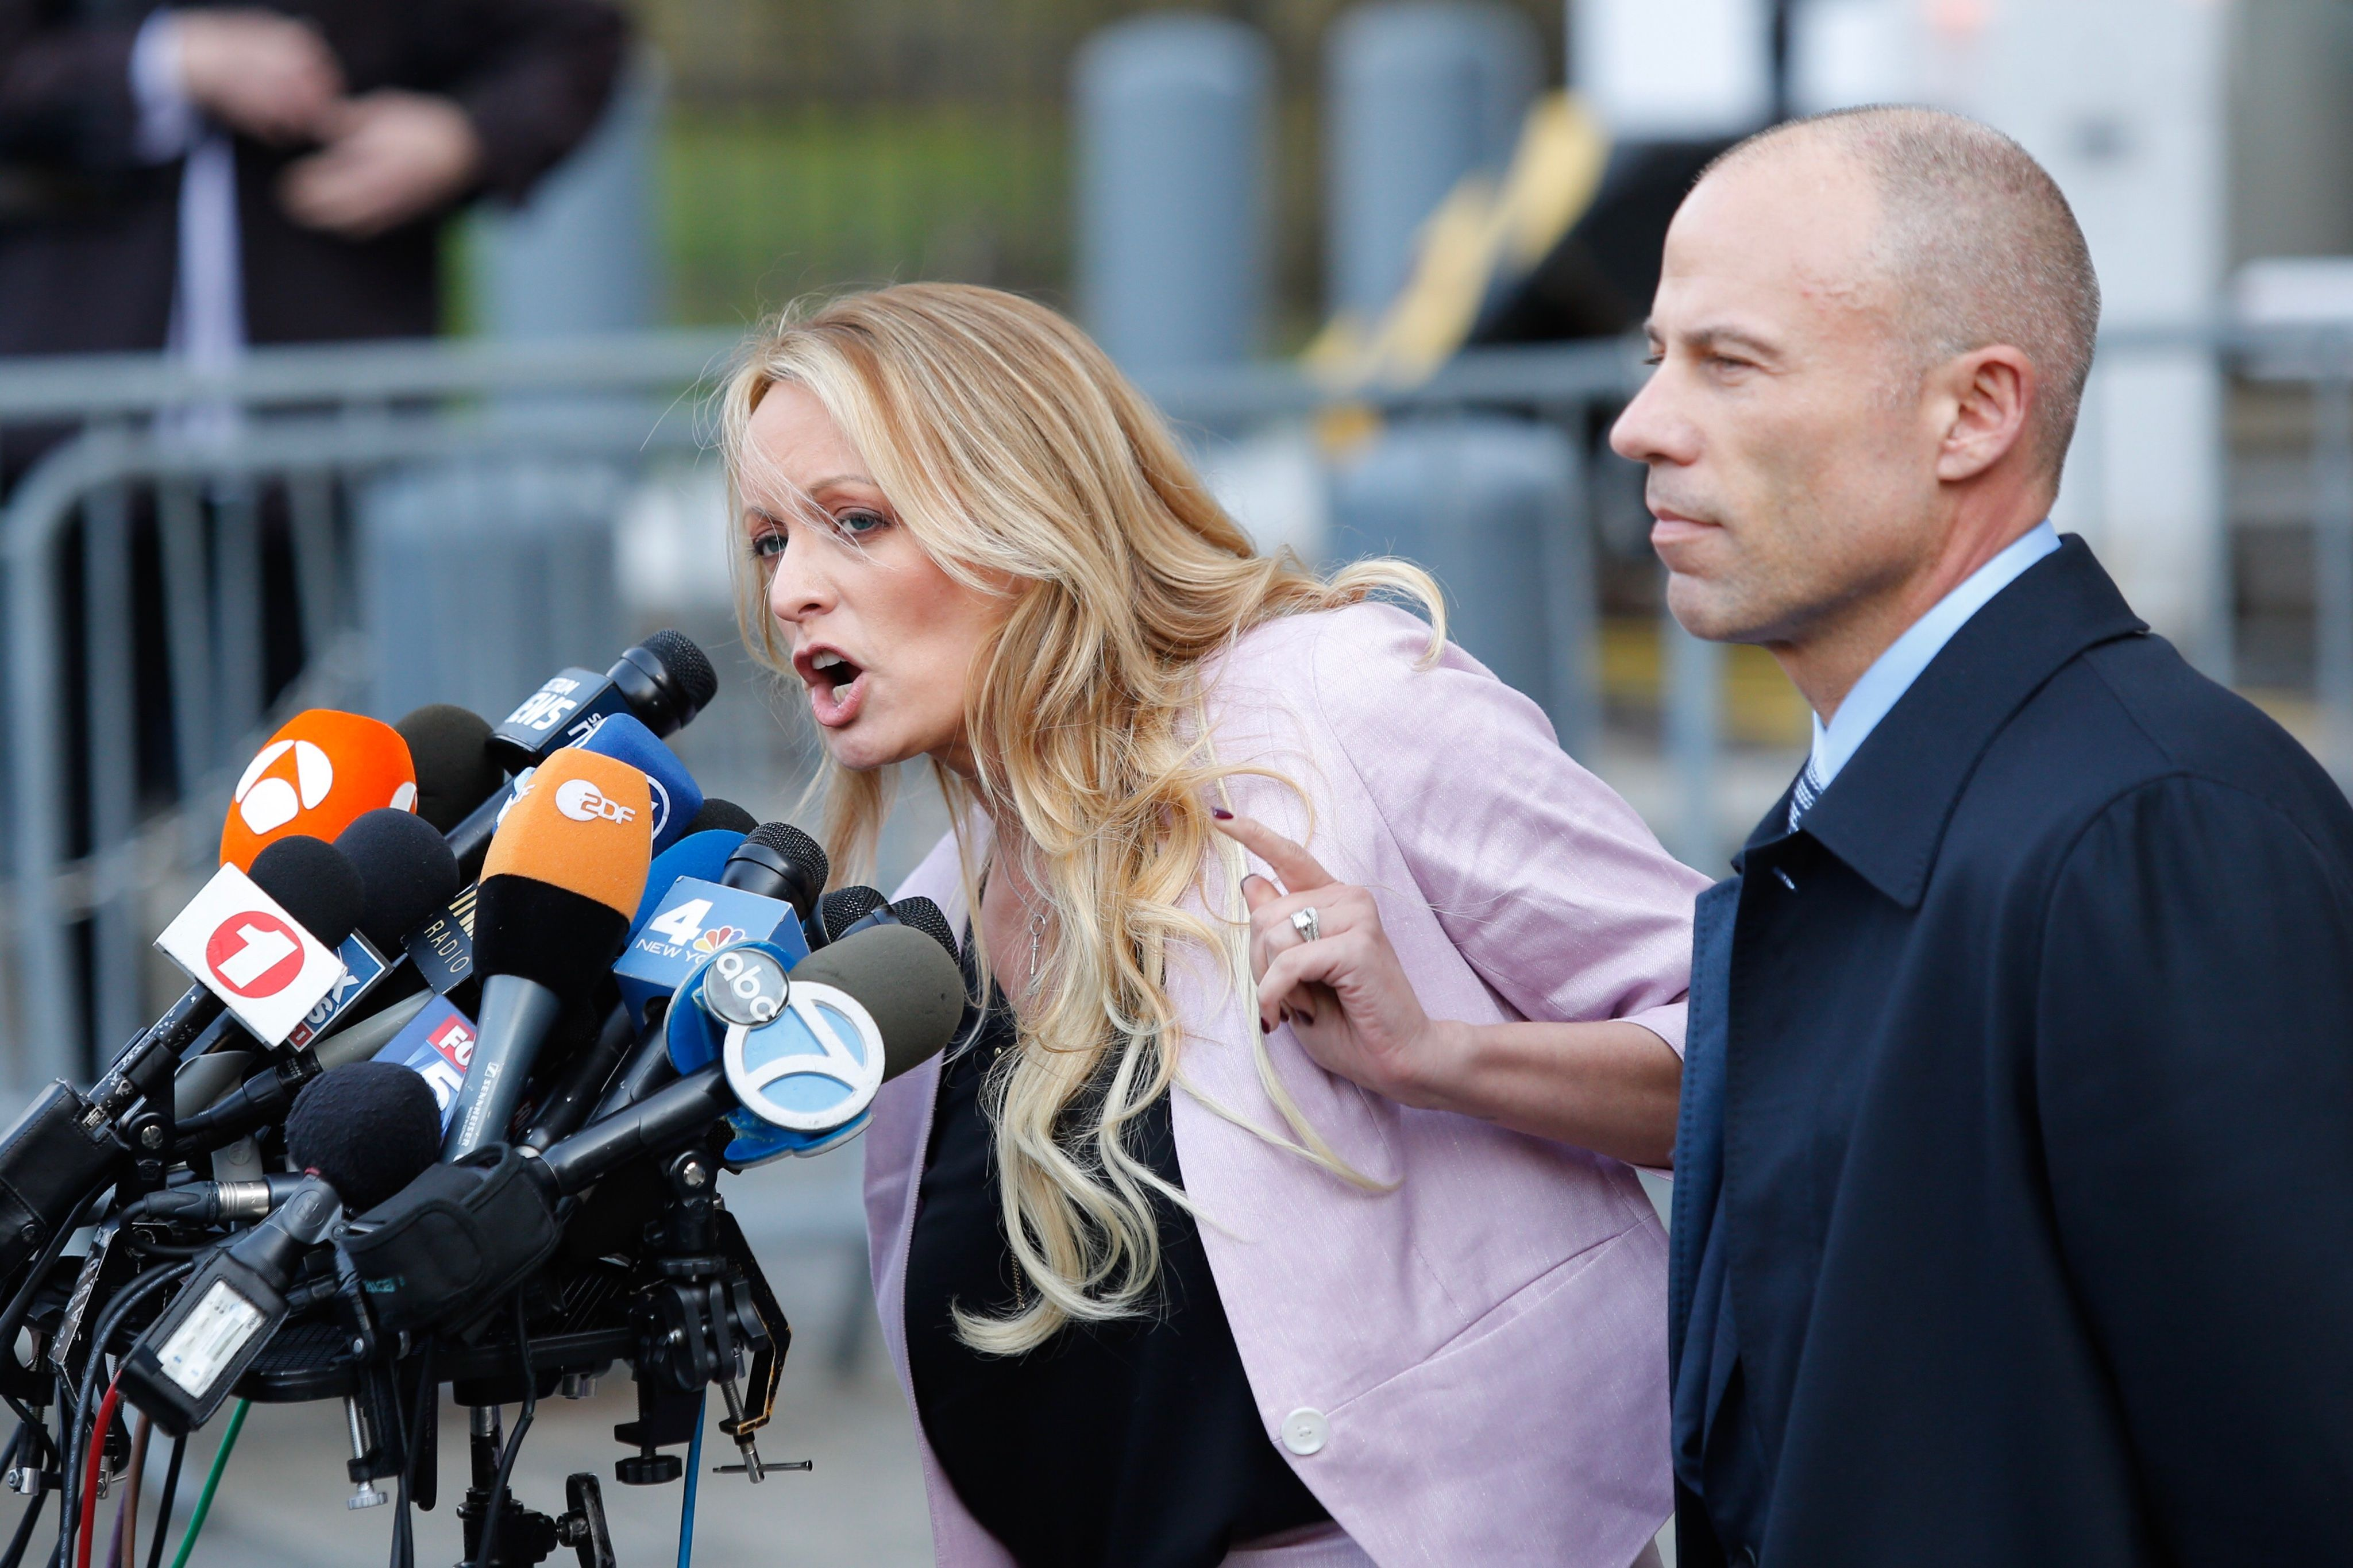 Adult-film actress Stephanie Clifford, also known as Stormy Daniels speaks US Federal Court with her lawyer Michael Avenatti (R) on April 16, 2018, in Lower Manhattan, New York. President Donald Trump's personal lawyer Michael Cohen has been under criminal investigation for months over his business dealings, and FBI agents last week raided his home, hotel room, office, a safety deposit box and seized two cellphones. Some of the documents reportedly relate to payments to porn star Stormy Daniels, who claims a one-night stand with Trump a decade ago, and ex Playboy model Karen McDougal who also claims an affair. (EDUARDO MUNOZ ALVAREZ/AFP/Getty Images)